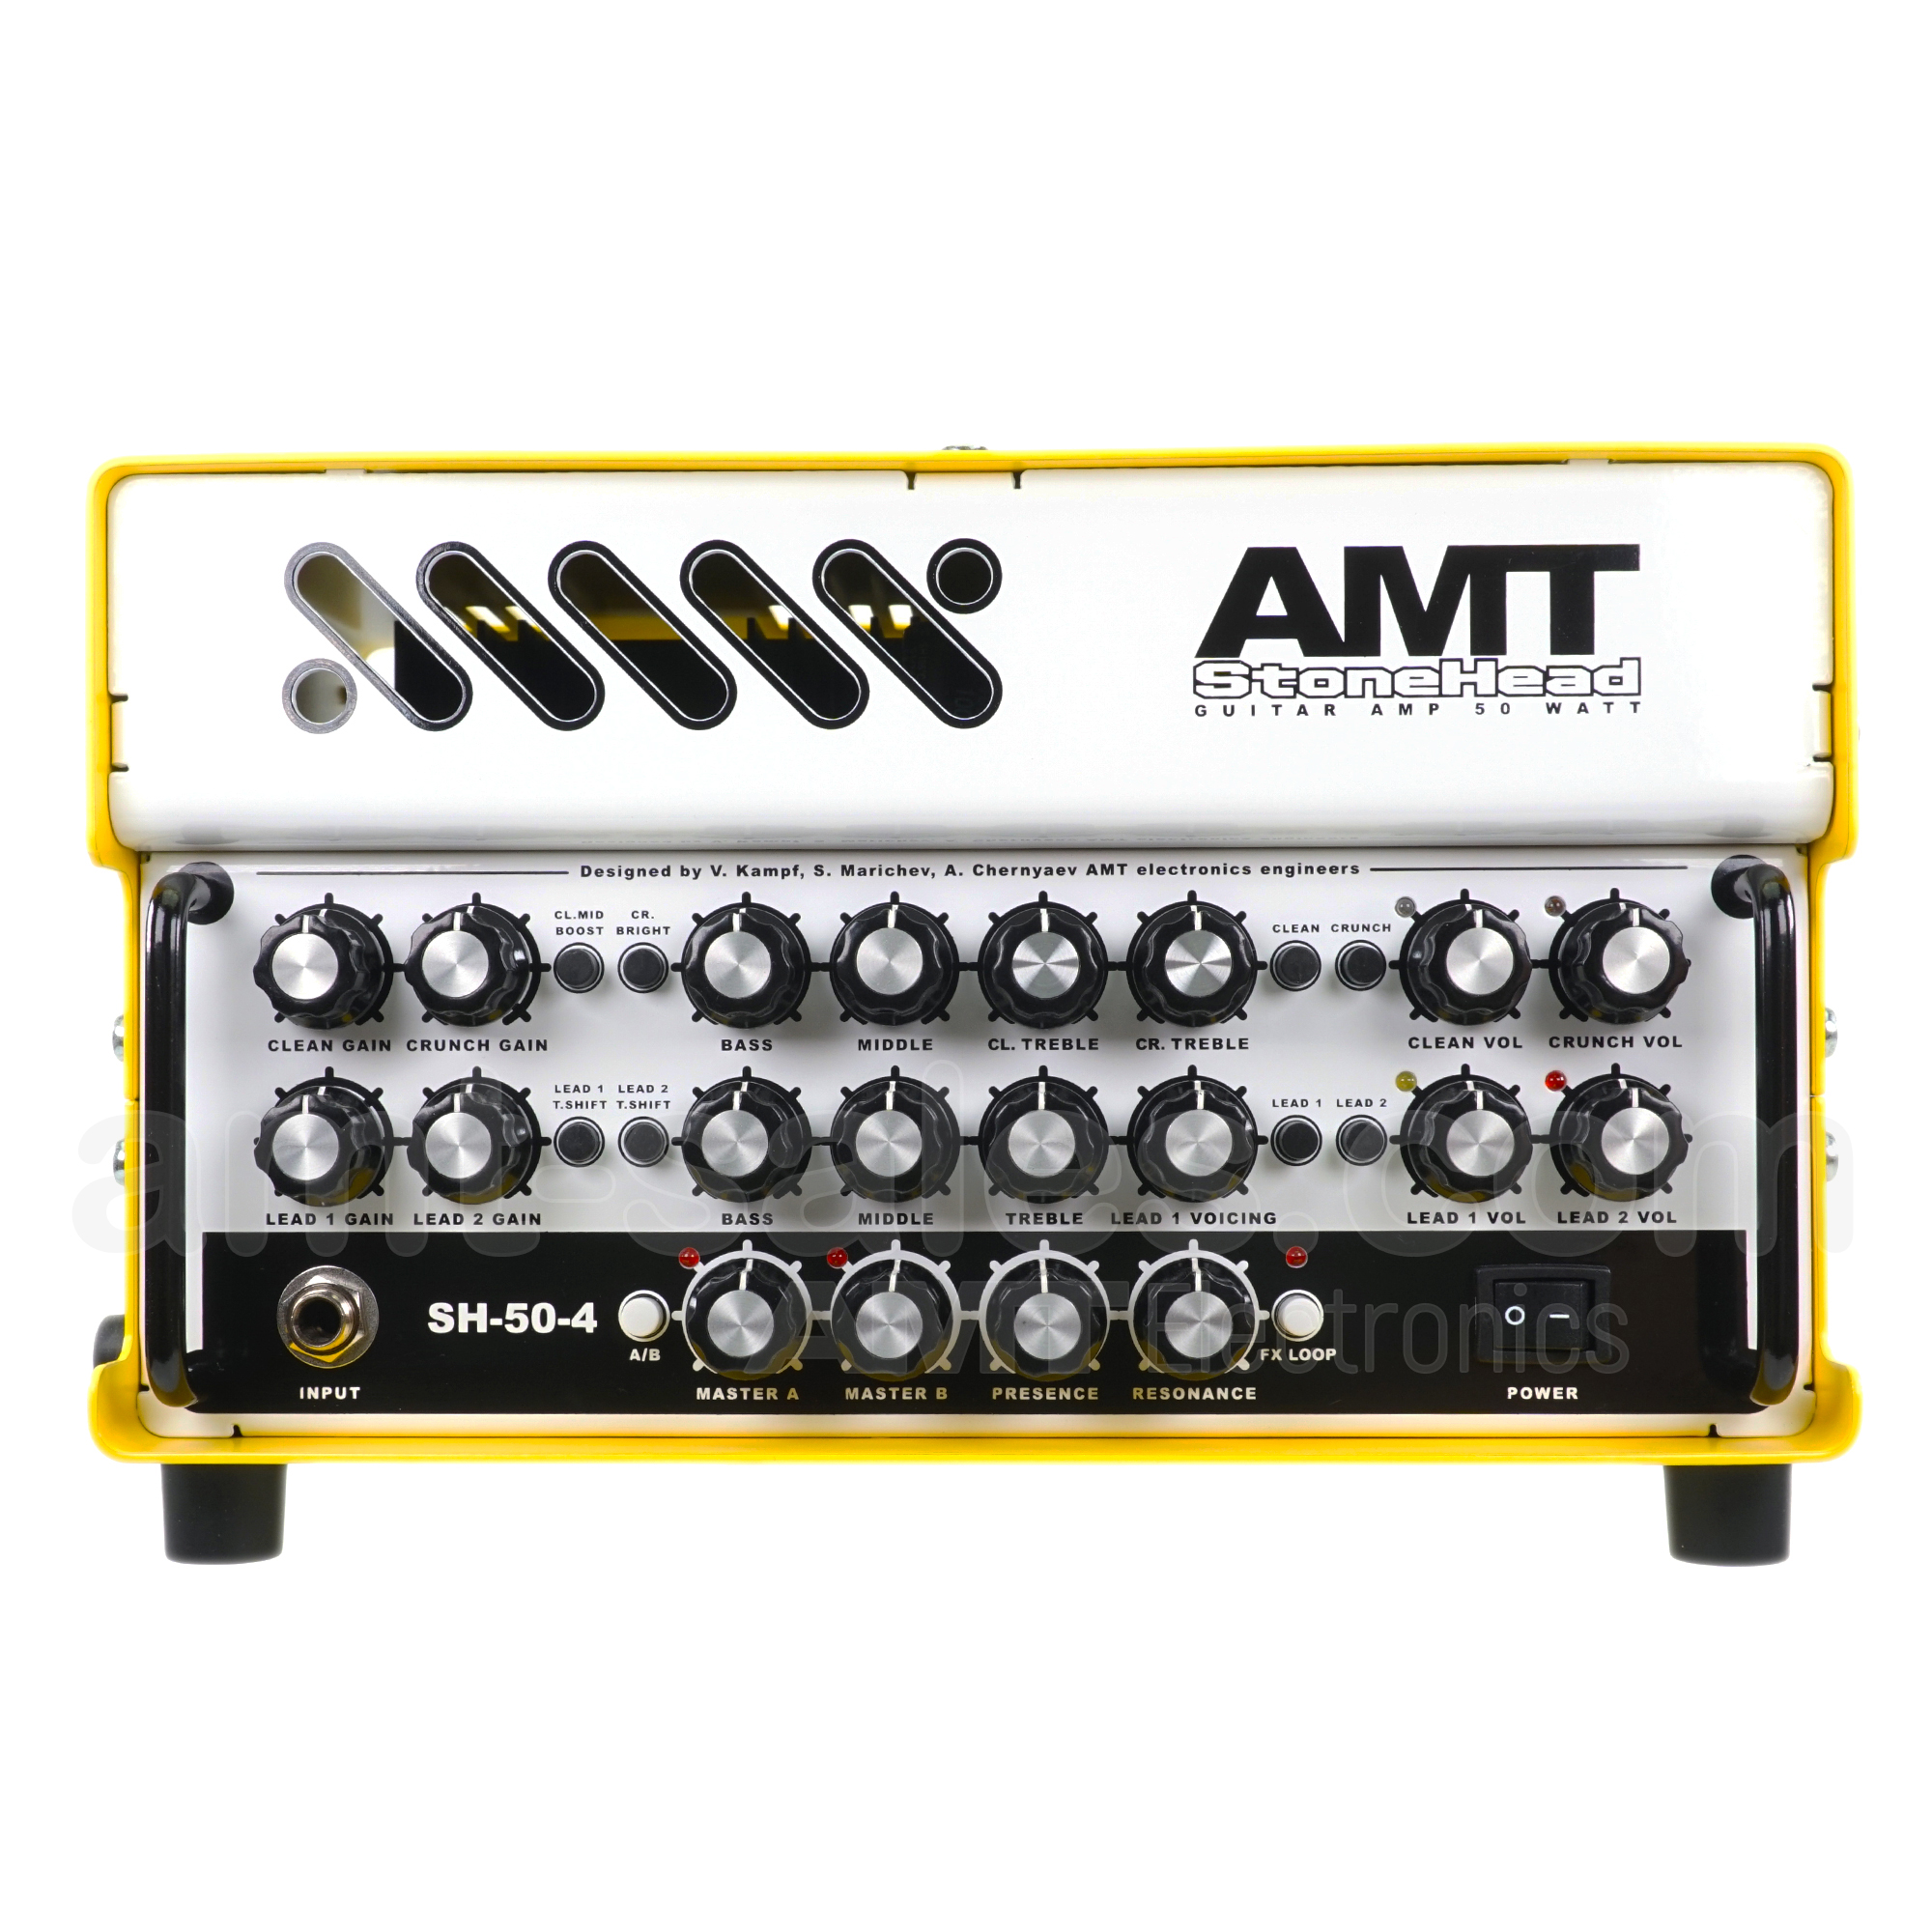 AMT Stonehead-50-4 - Guitar Head Amplifier (+ including special Bag)